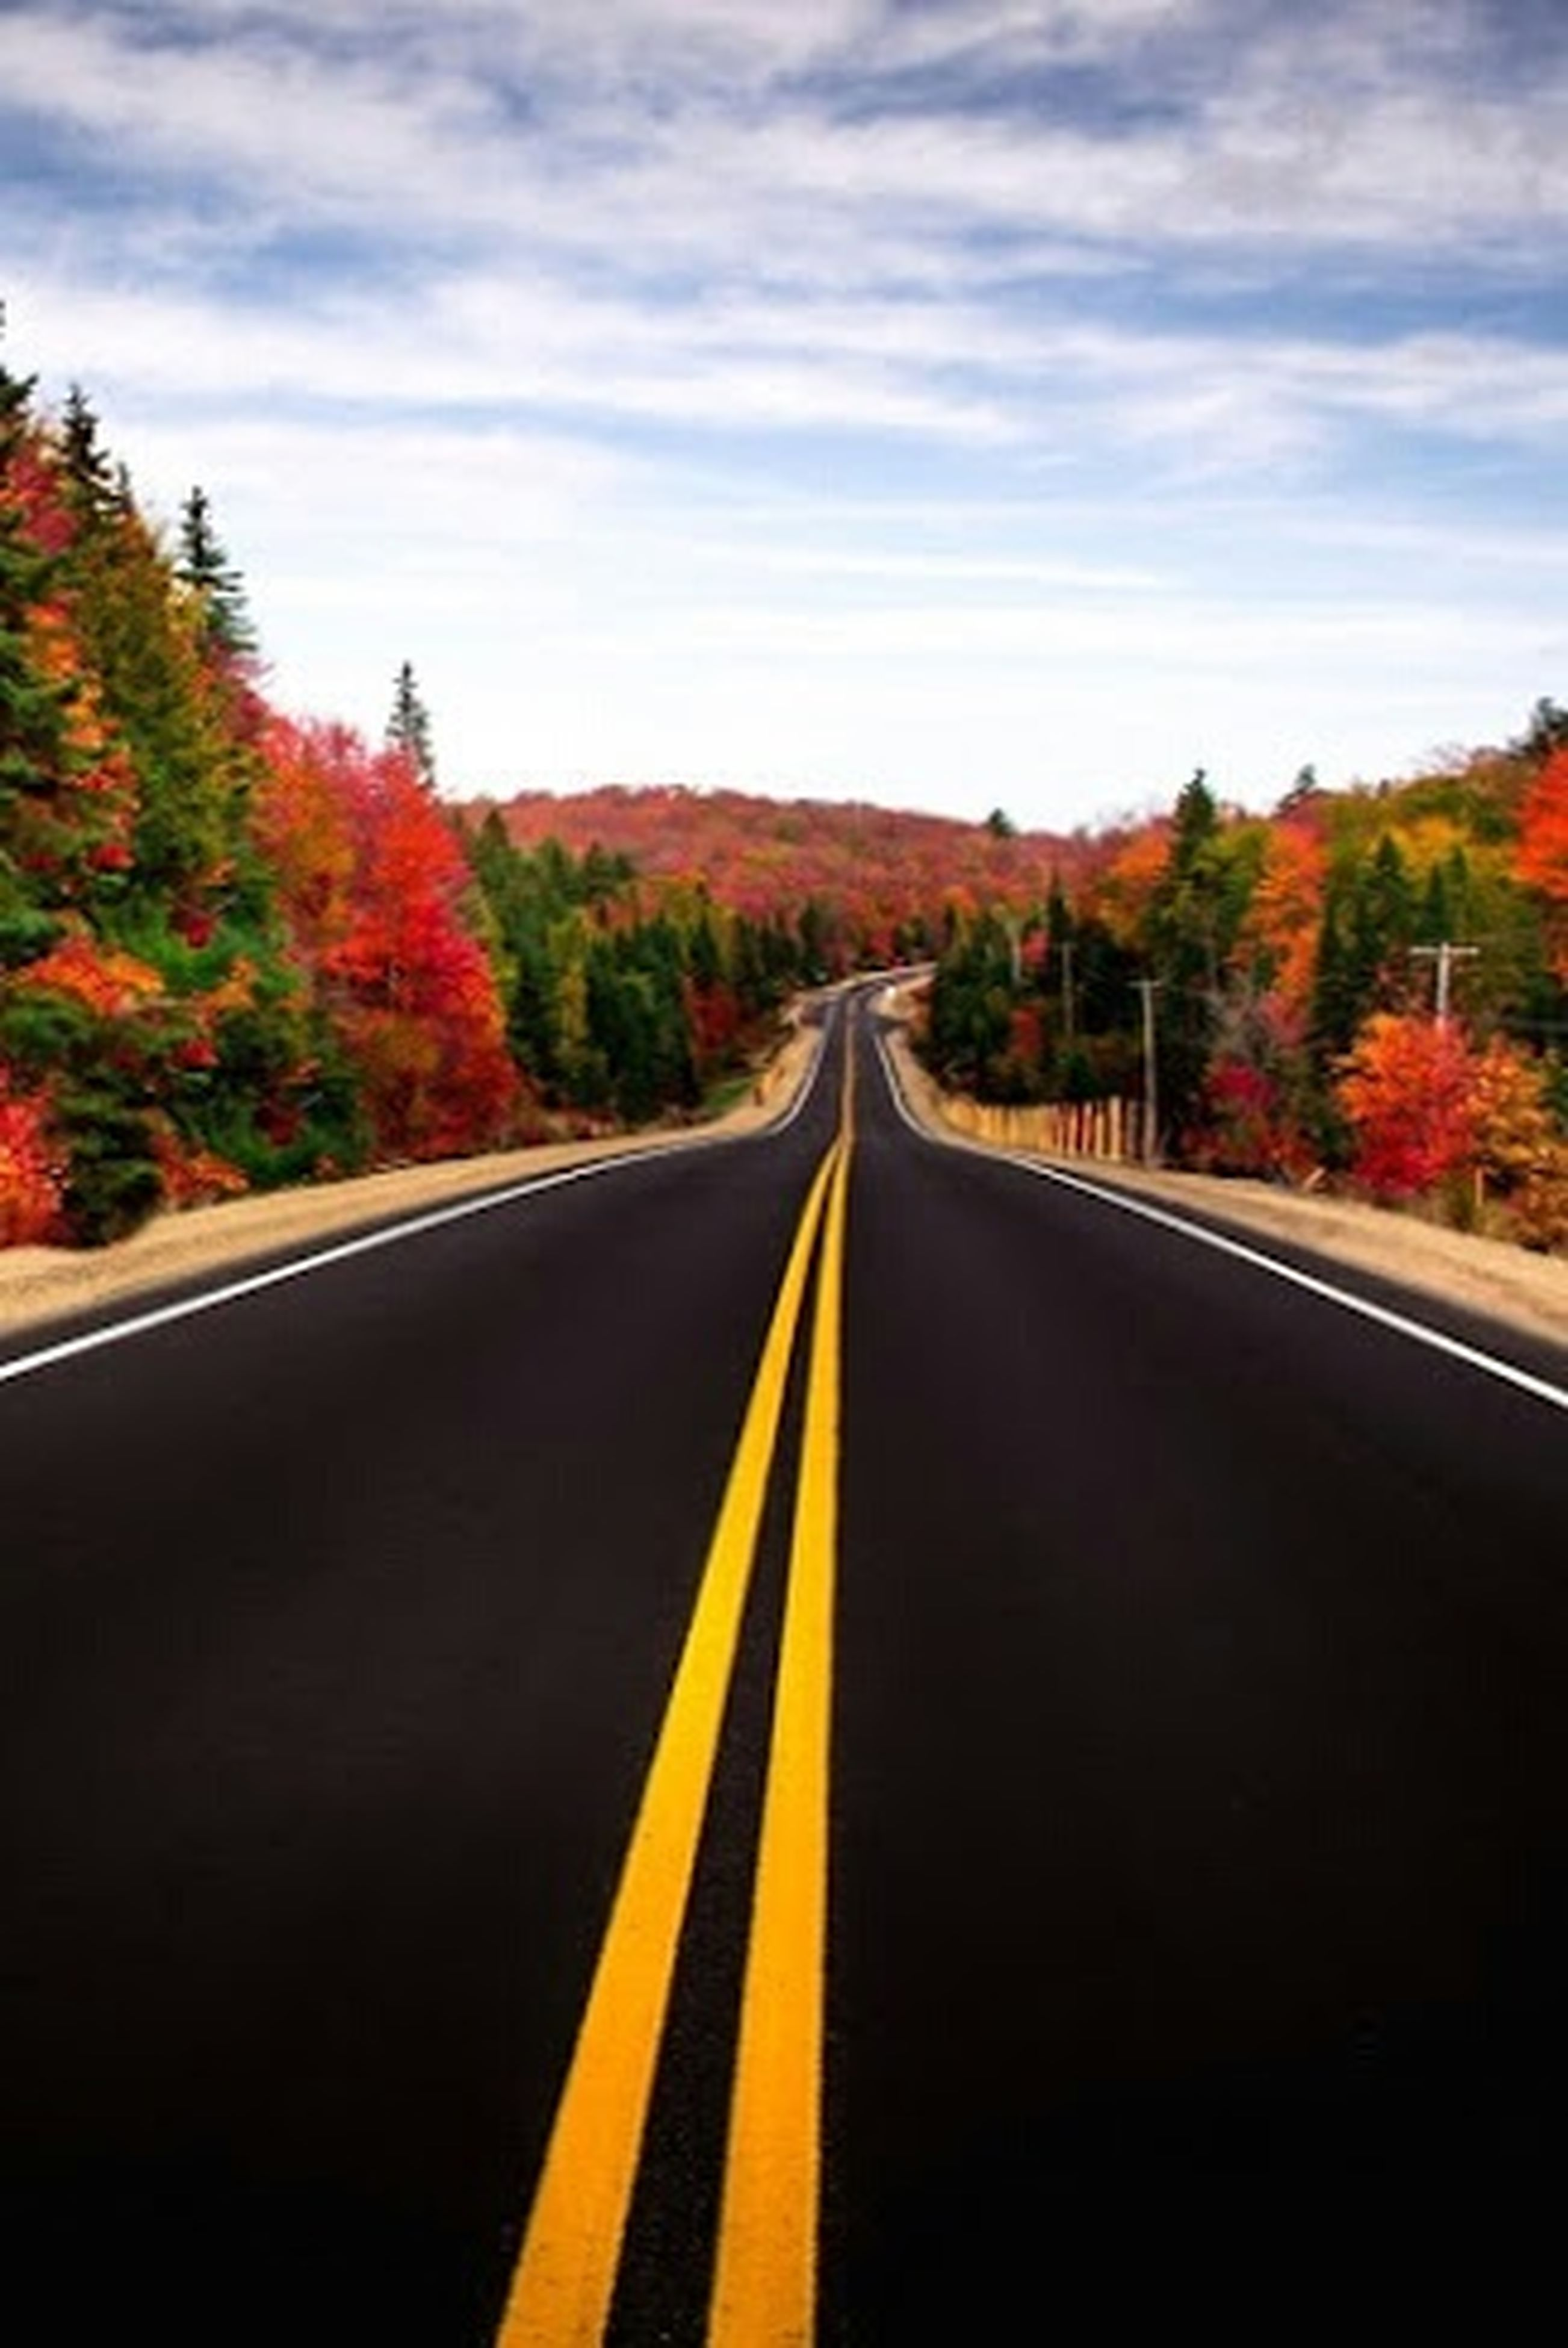 the way forward, transportation, diminishing perspective, vanishing point, tree, road, sky, road marking, yellow, cloud - sky, cloud, nature, long, tranquility, double yellow line, country road, autumn, beauty in nature, tranquil scene, growth